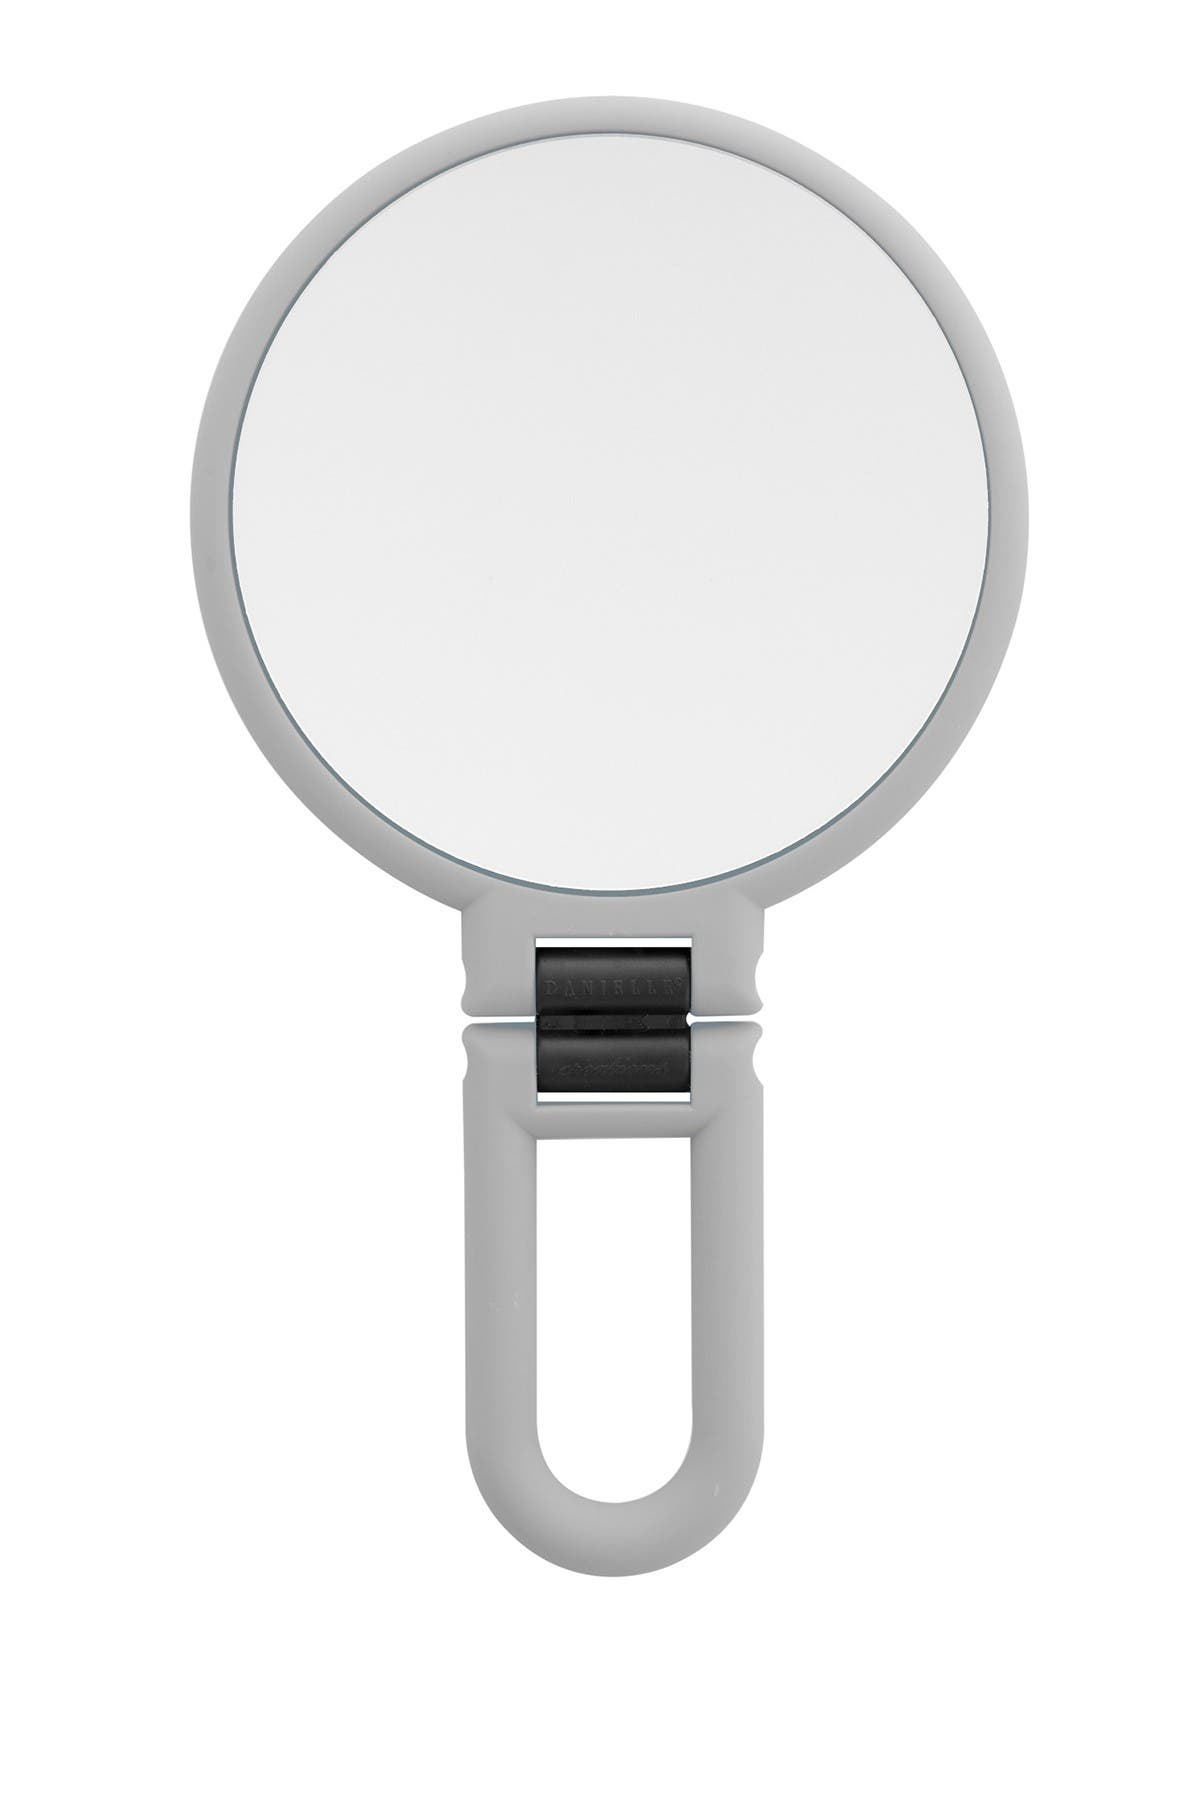 Image of UPPER CANADA SOAPS Danielle Soft Touch Hand Held Foldable Mirror - Cool Grey